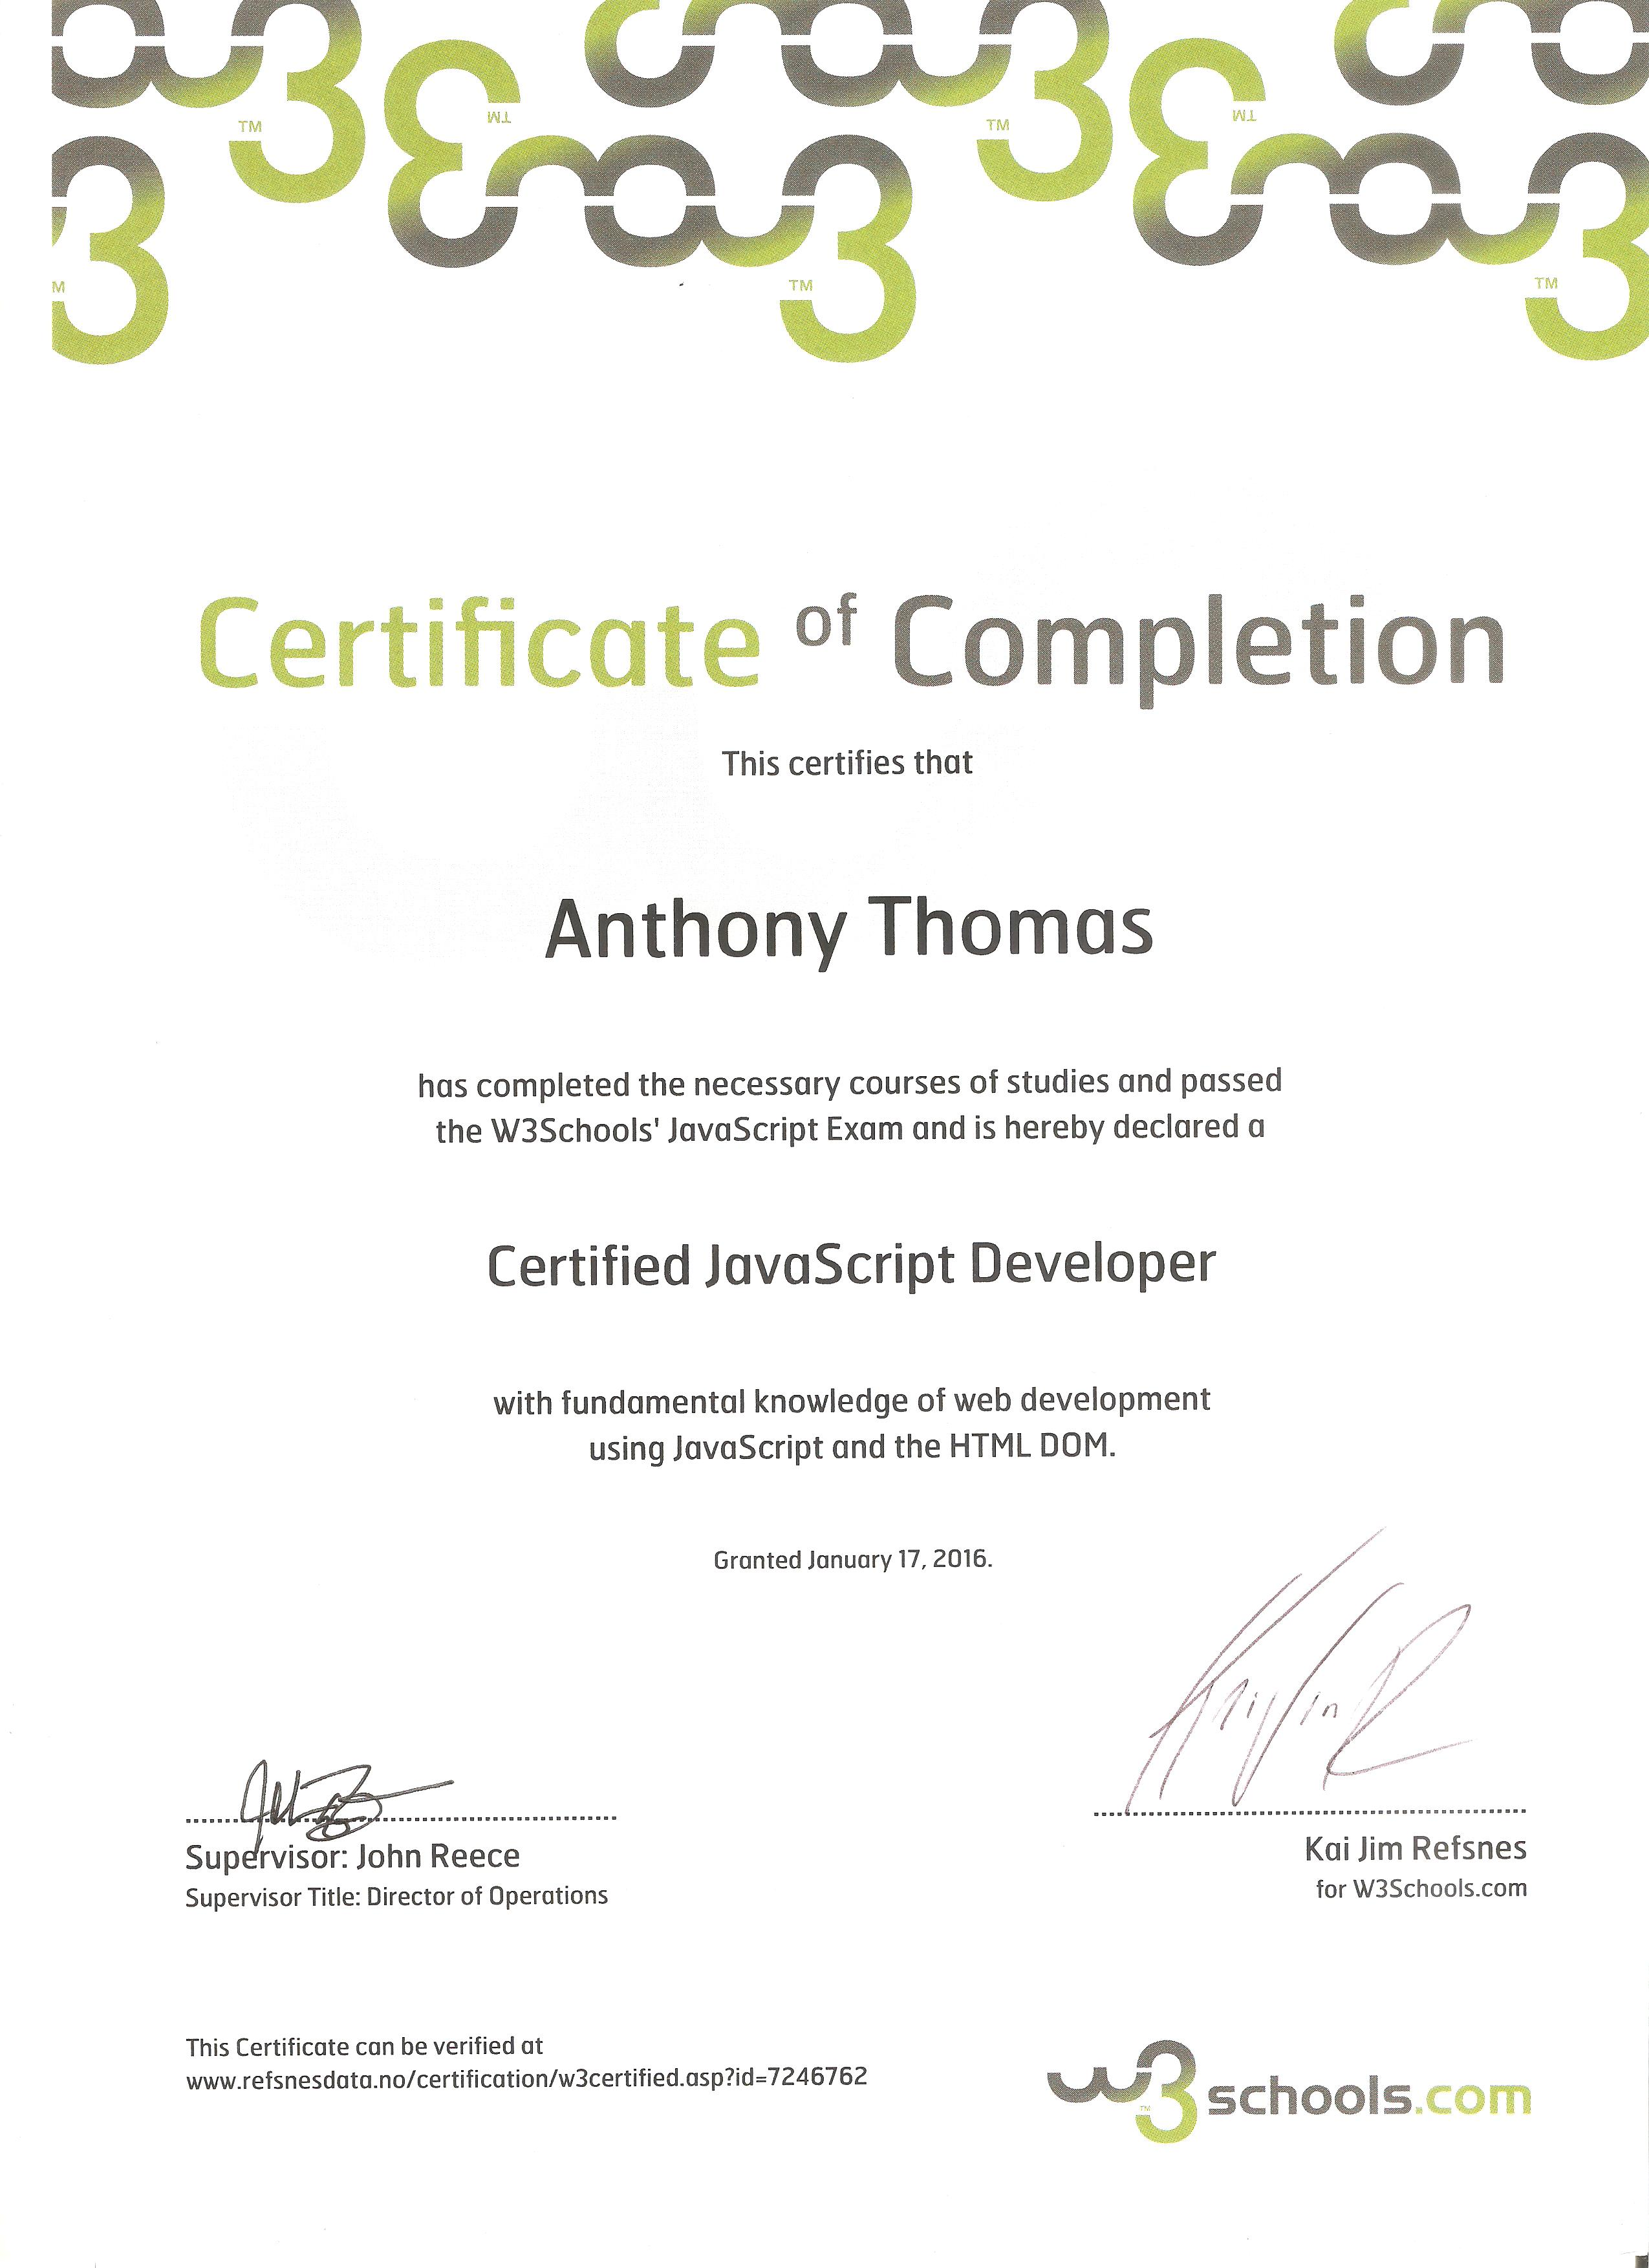 Anthony thomas resume january 2016 css developers certificate w3schools july 2013 html developers certificate w3schools fall 2003 introduction to computers xflitez Images